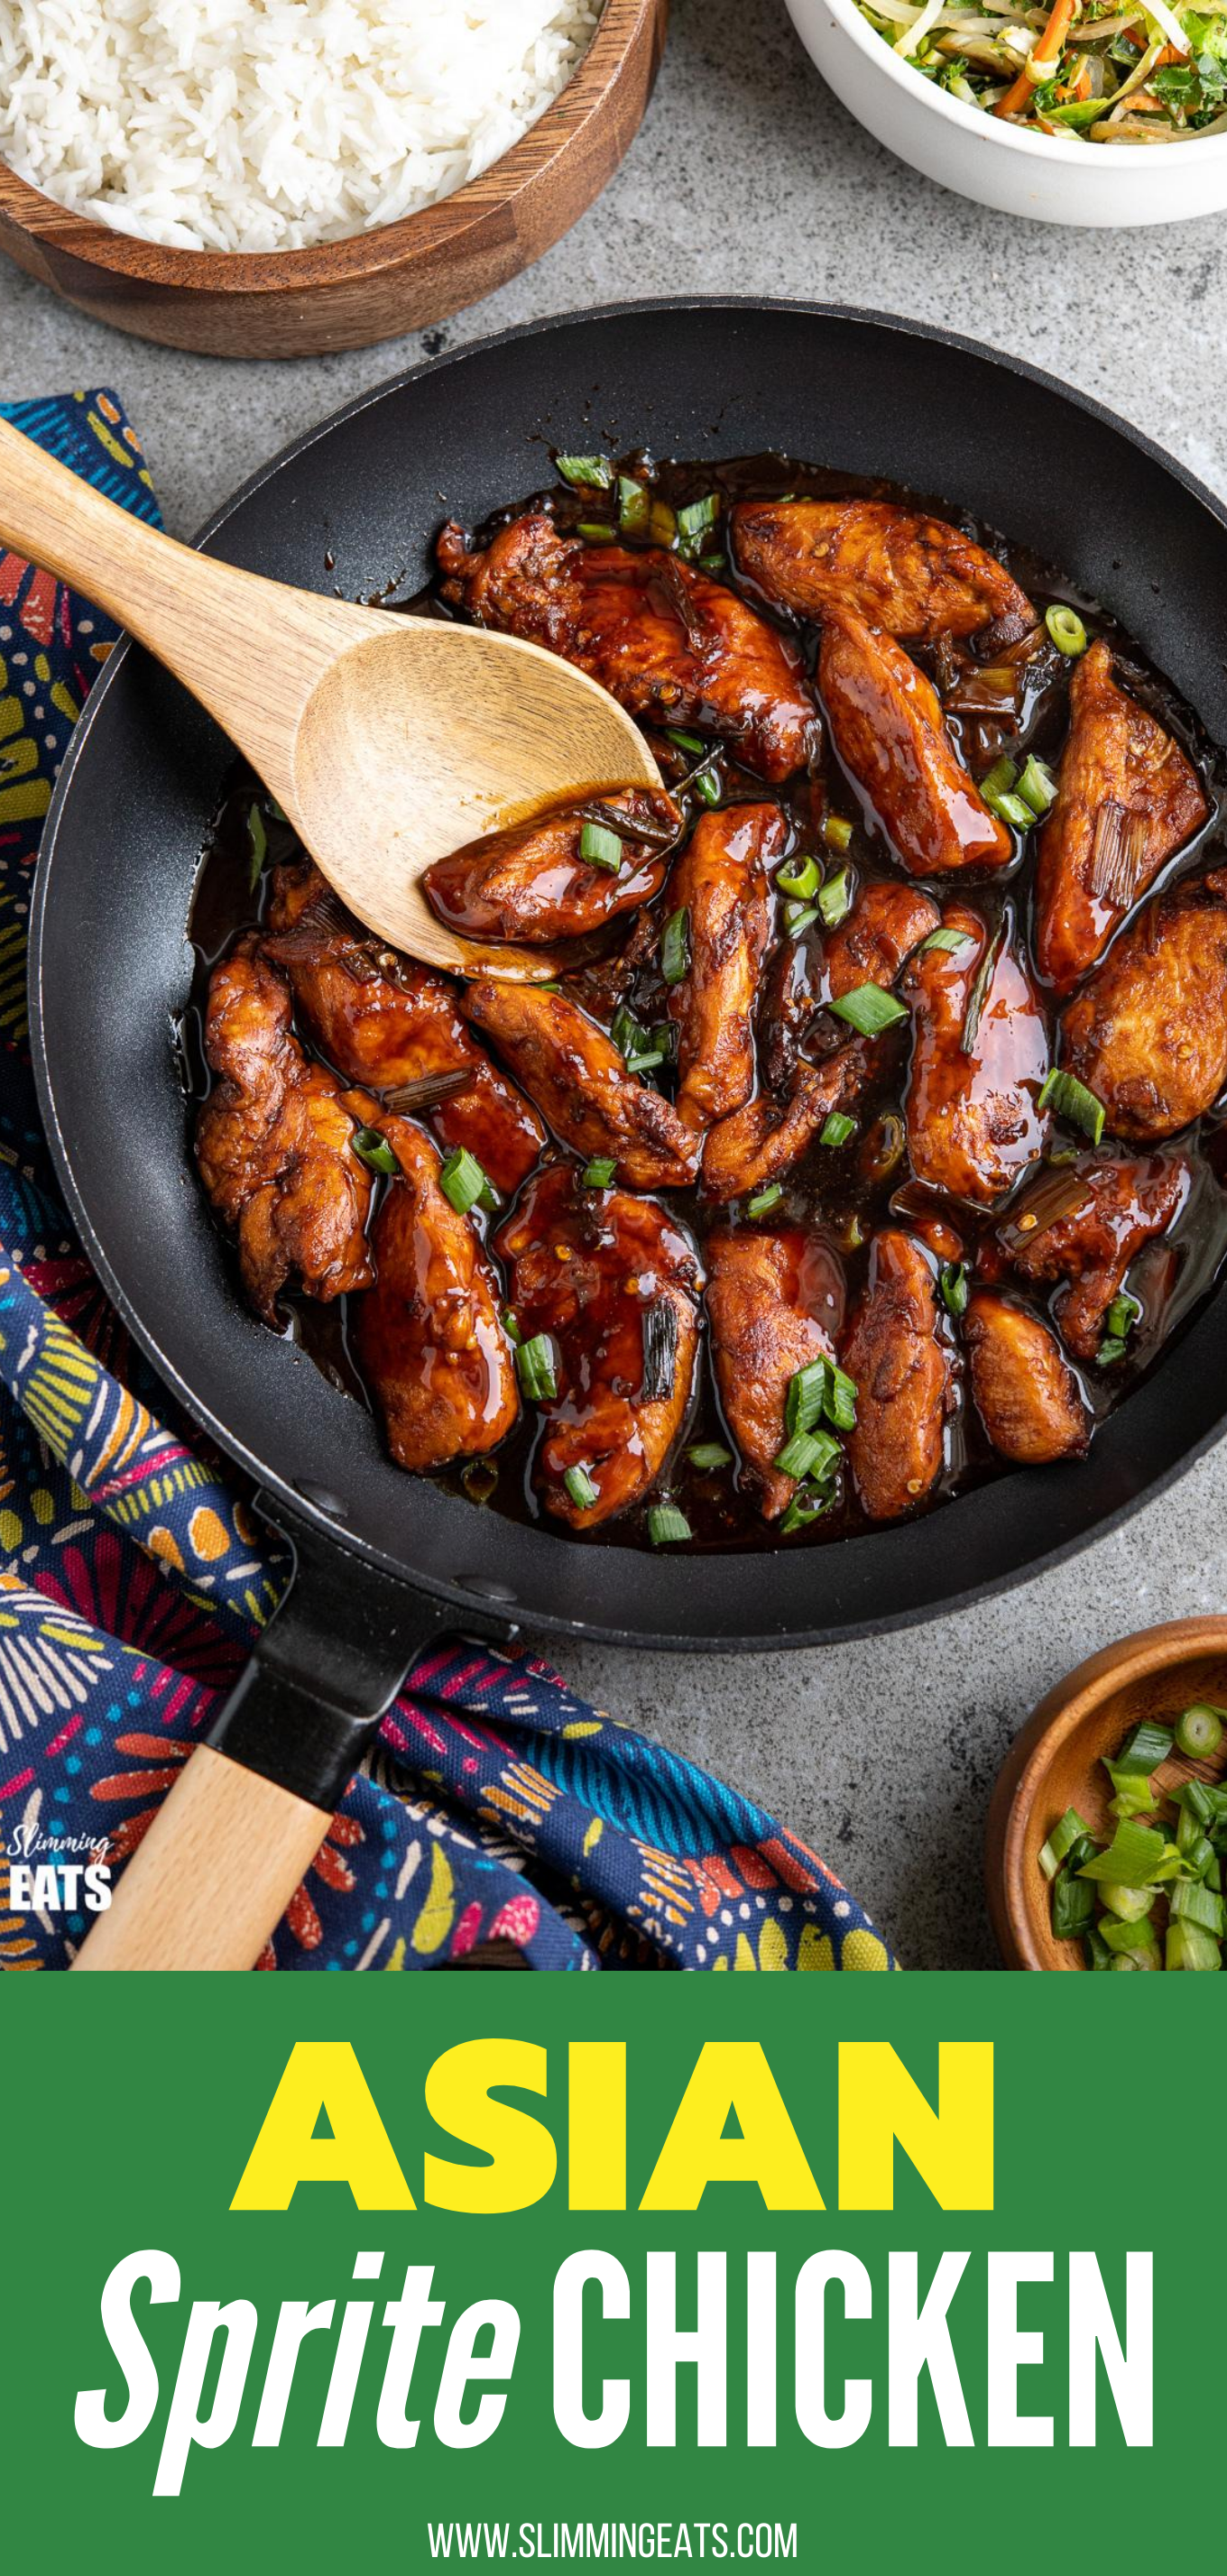 Asian sprite chicken in black pan with wooden handle and wooden spoon, rice and veg in bowls in background